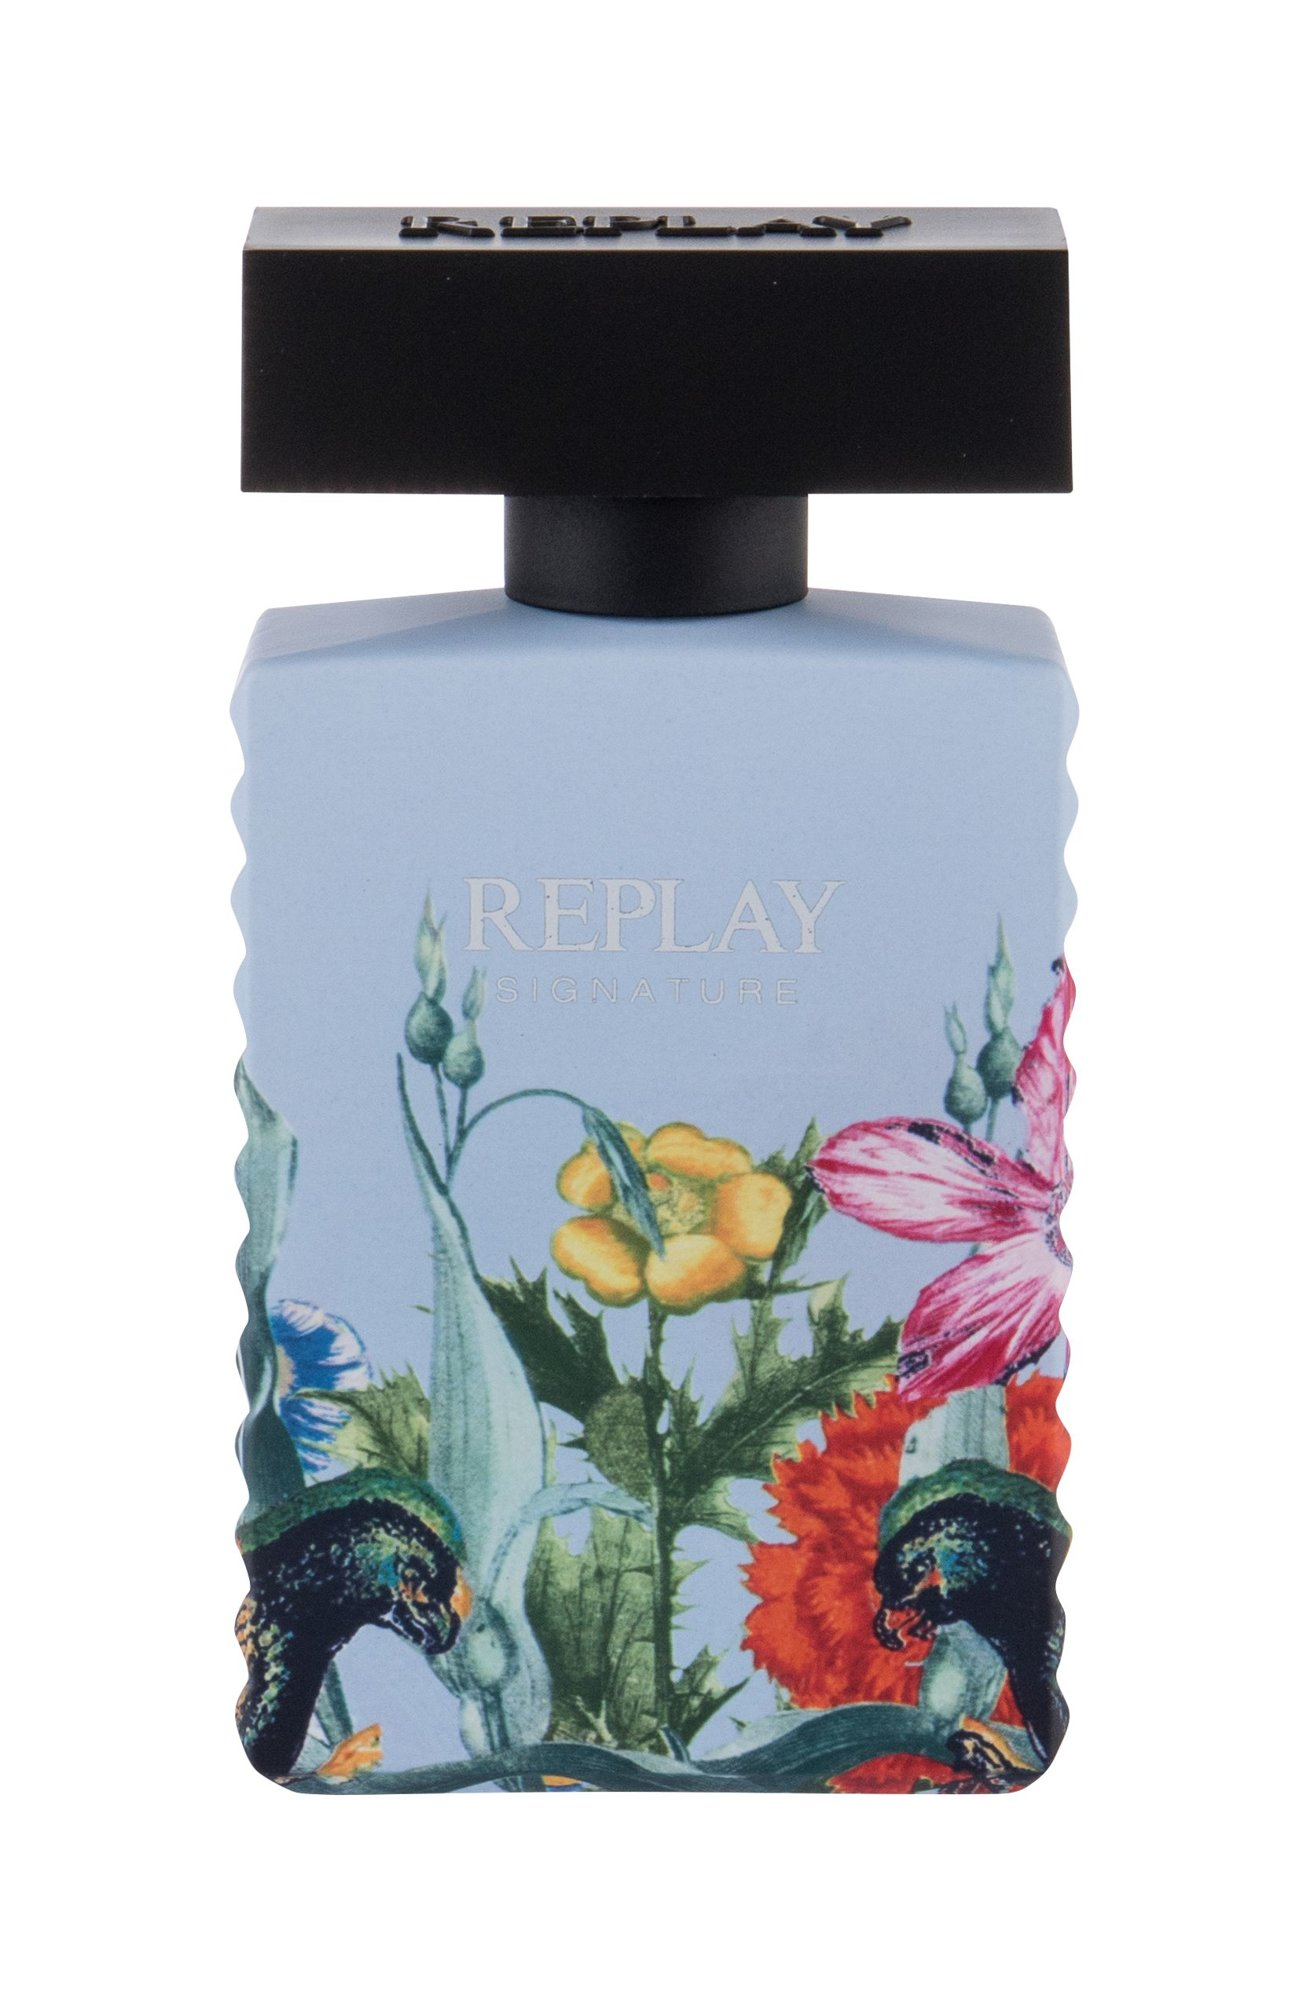 Replay Signature Eau de Toilette 50ml